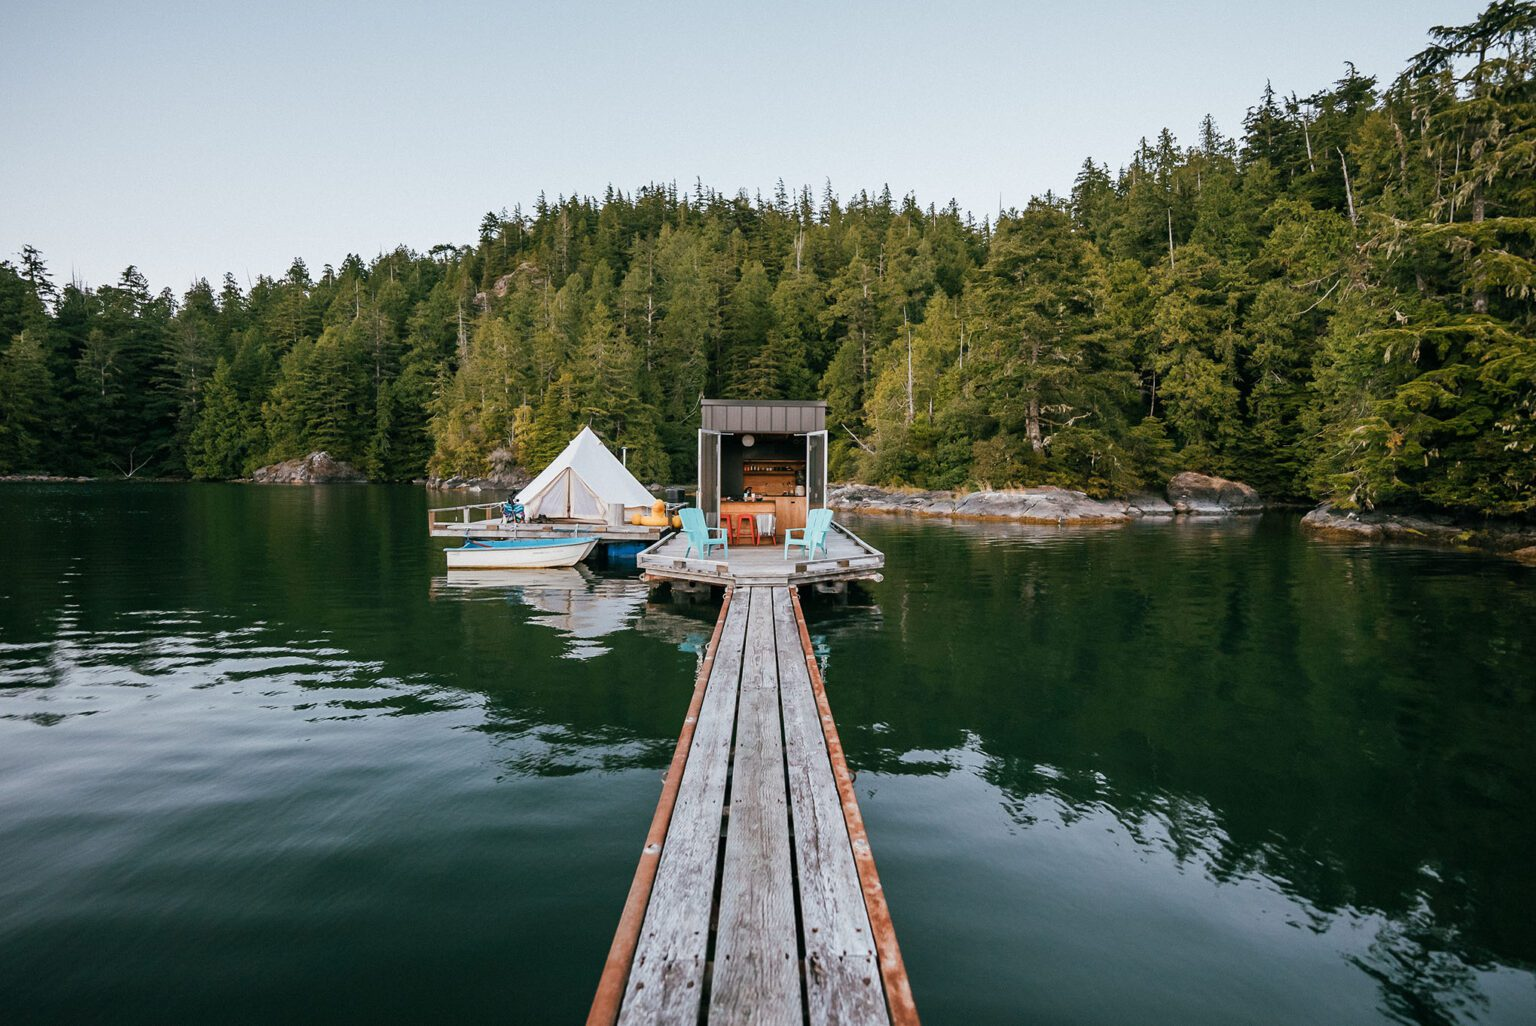 The lagoon float camp in Tofino British Columbia. The water is calm, the sky is blue and you are looking down the dock into the float camp.